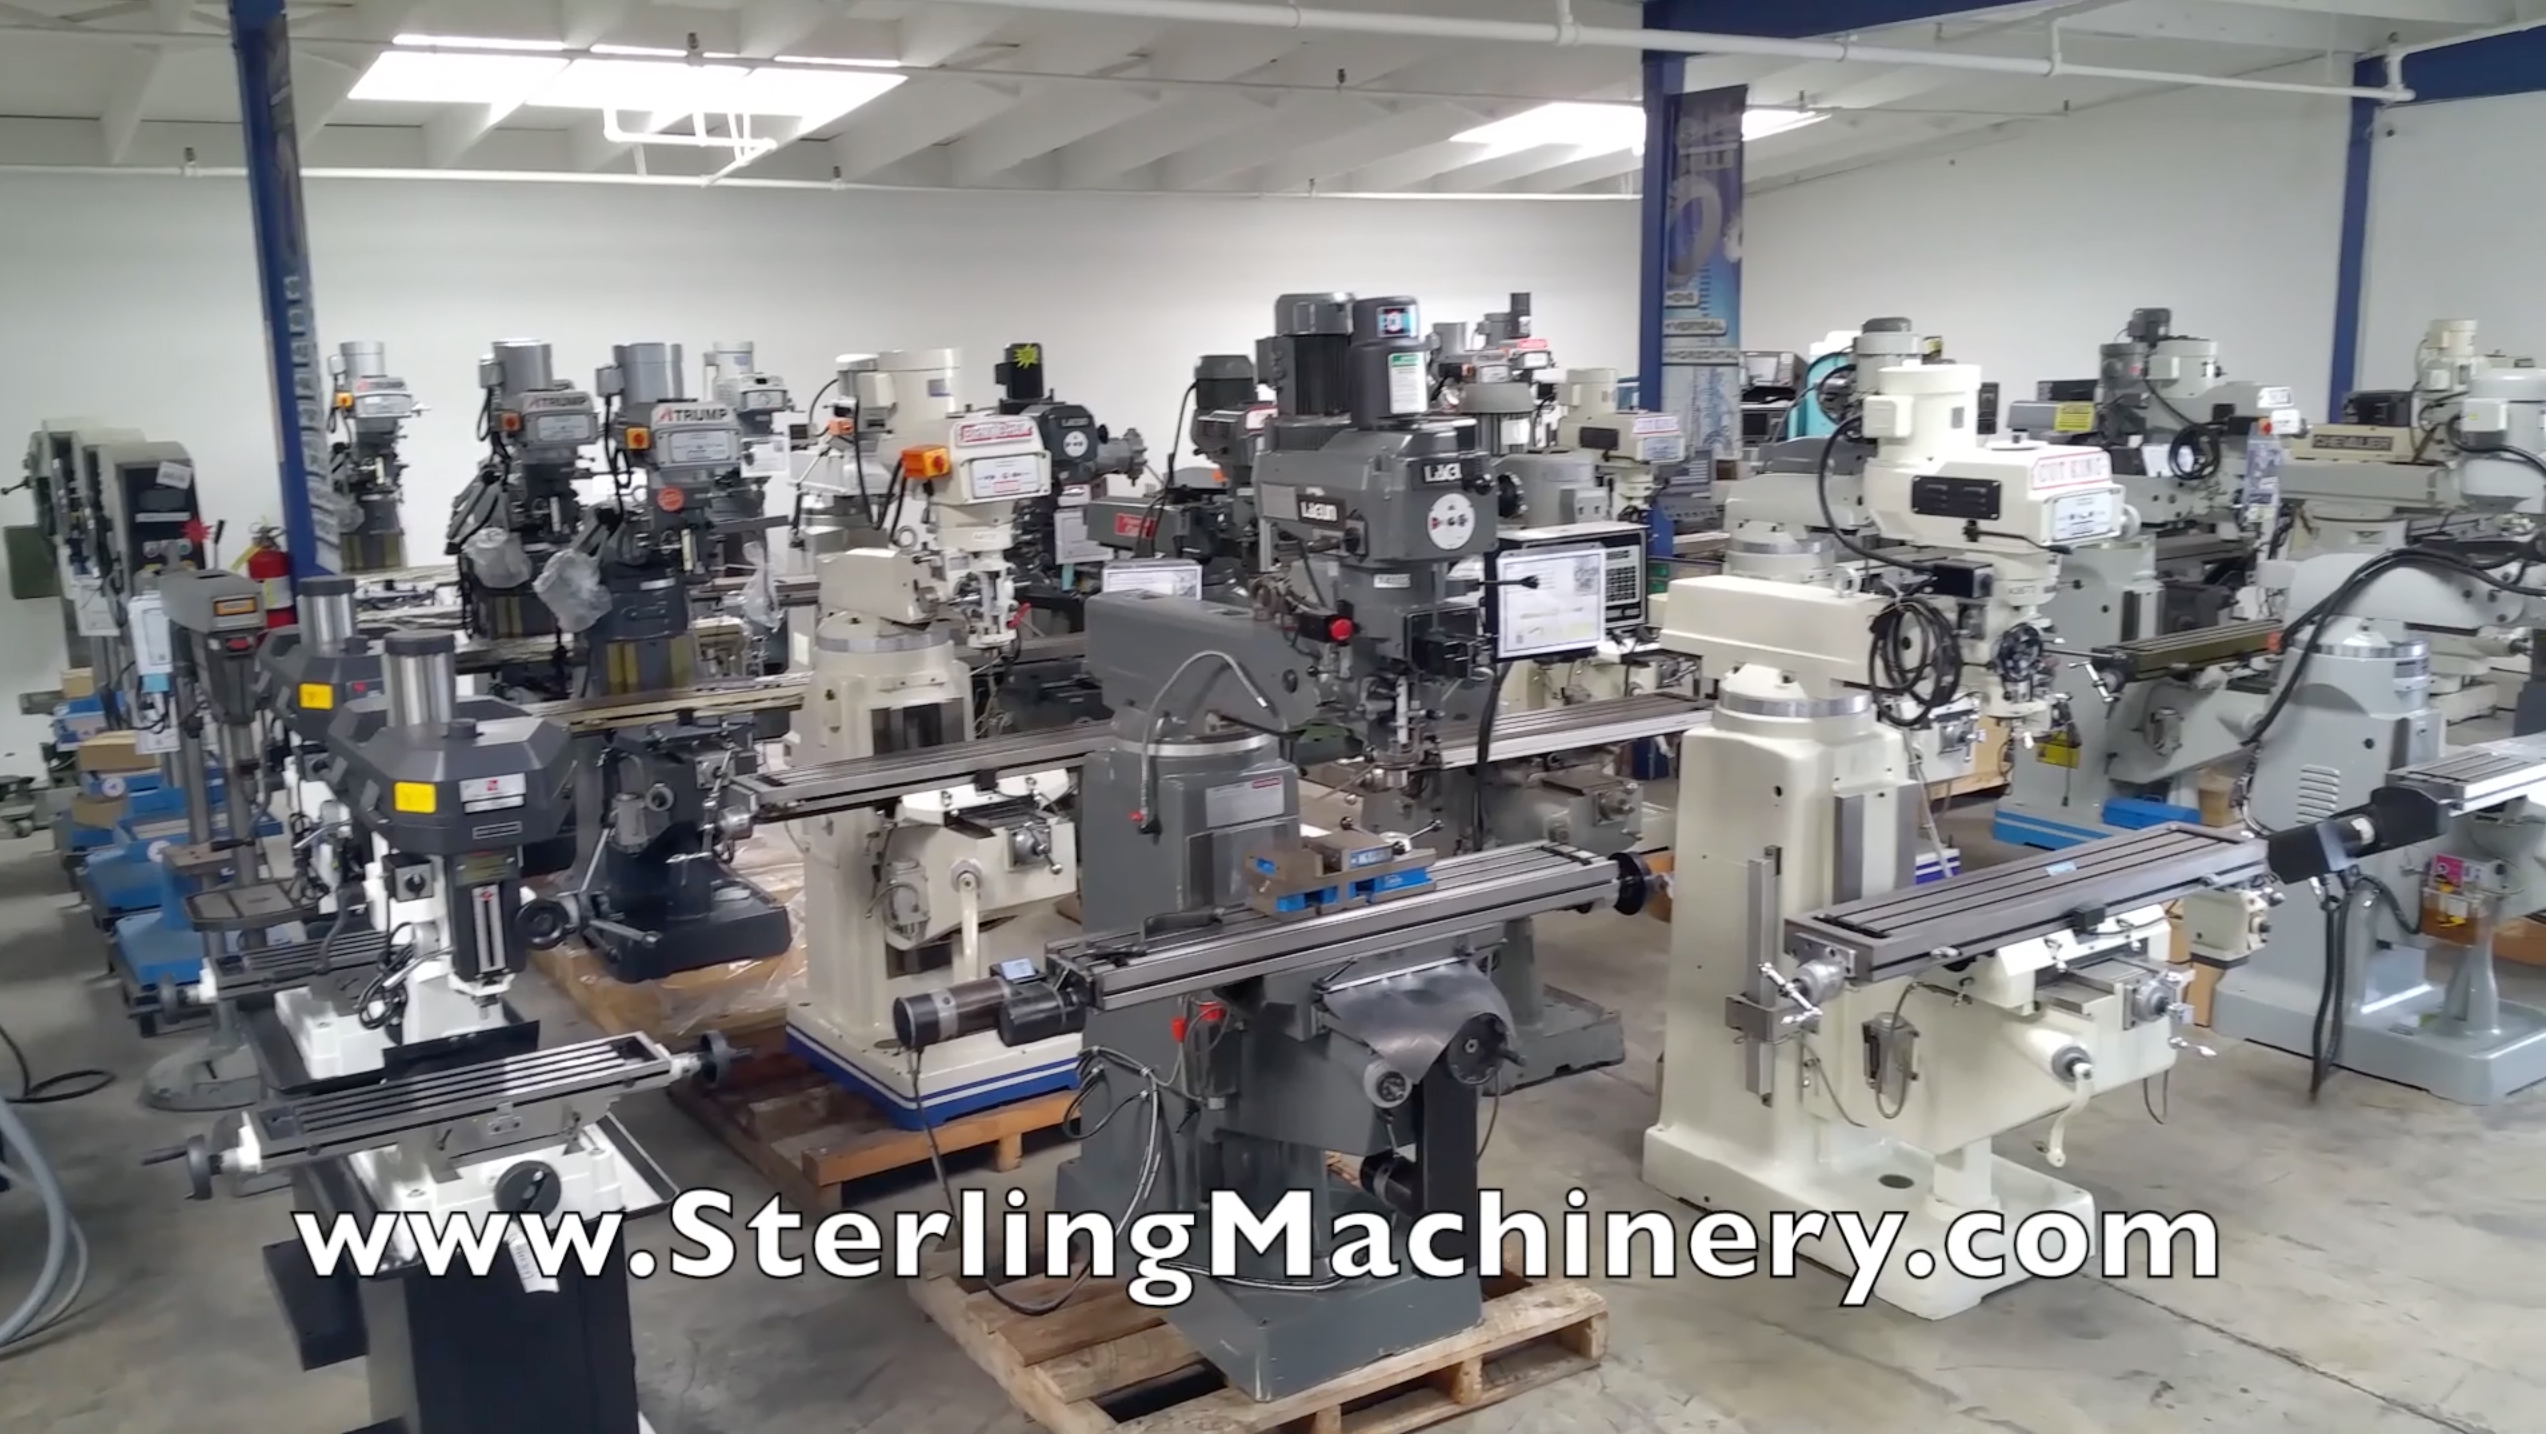 Sterling Machinery Exchange Company video www.SterlingMachinery.com